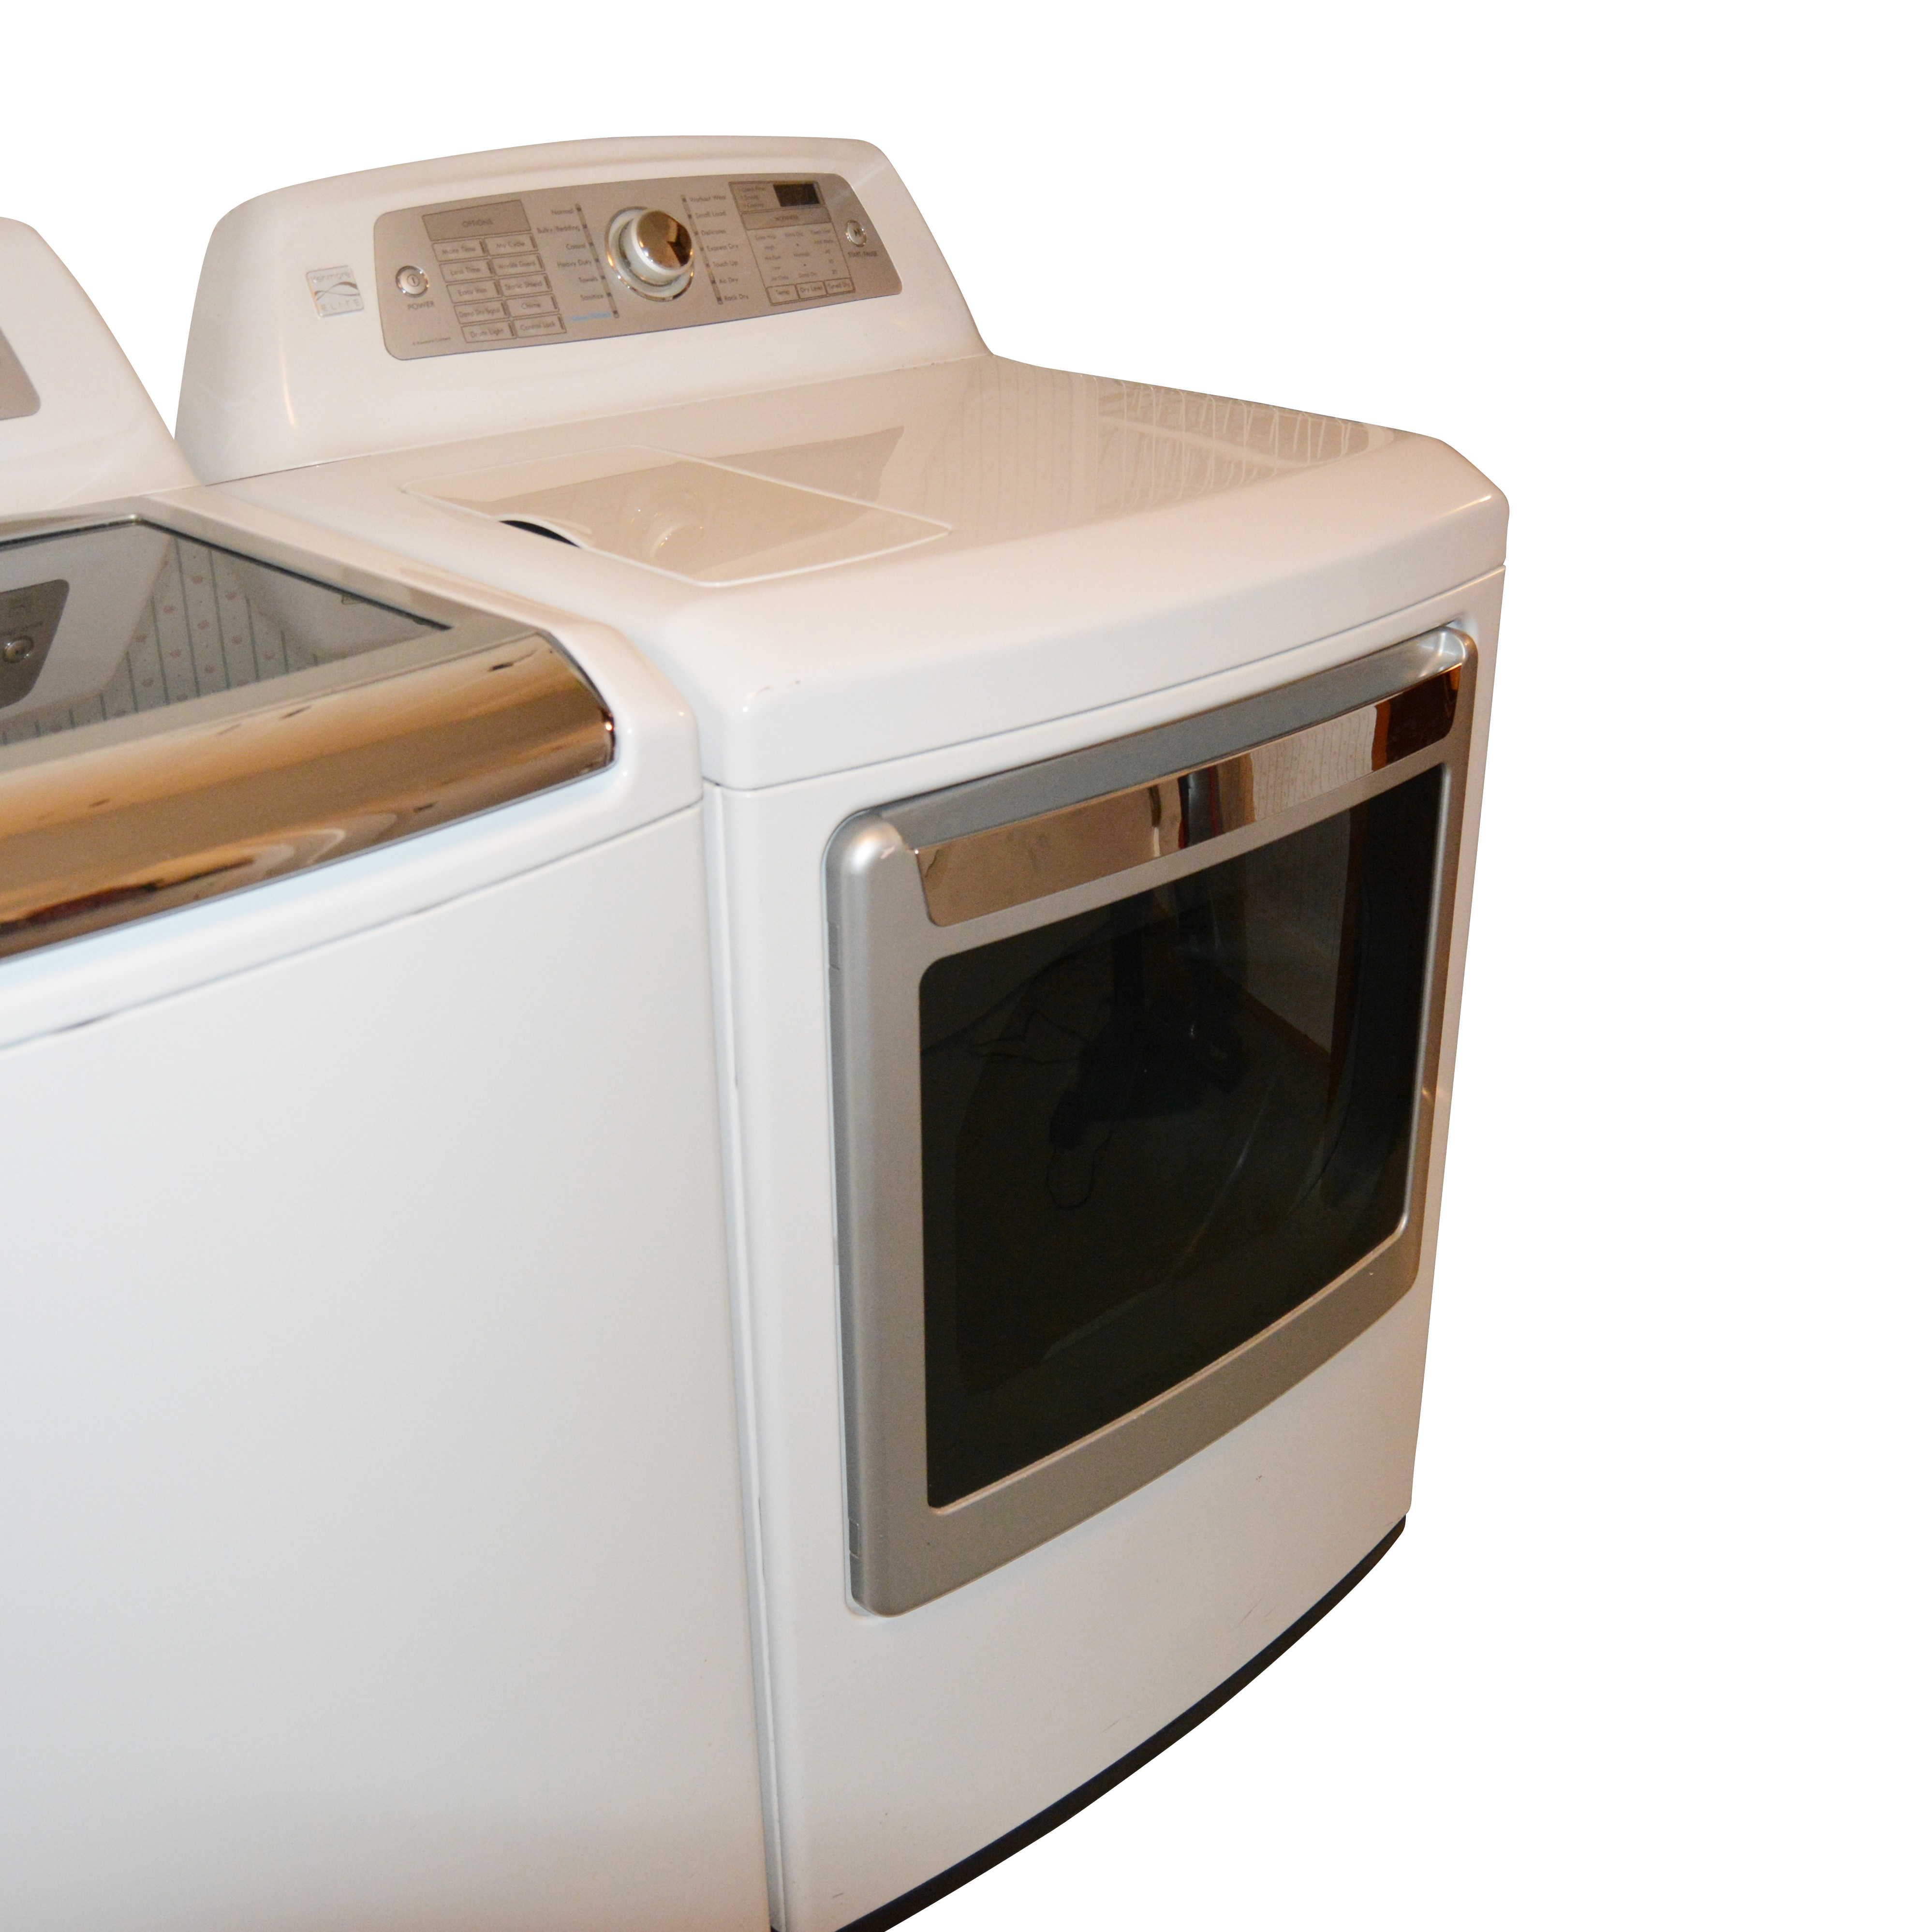 used washers and dryers for sale used washer and dryer auction ebthkenmore elite steam electric dryer [ 3995 x 3995 Pixel ]